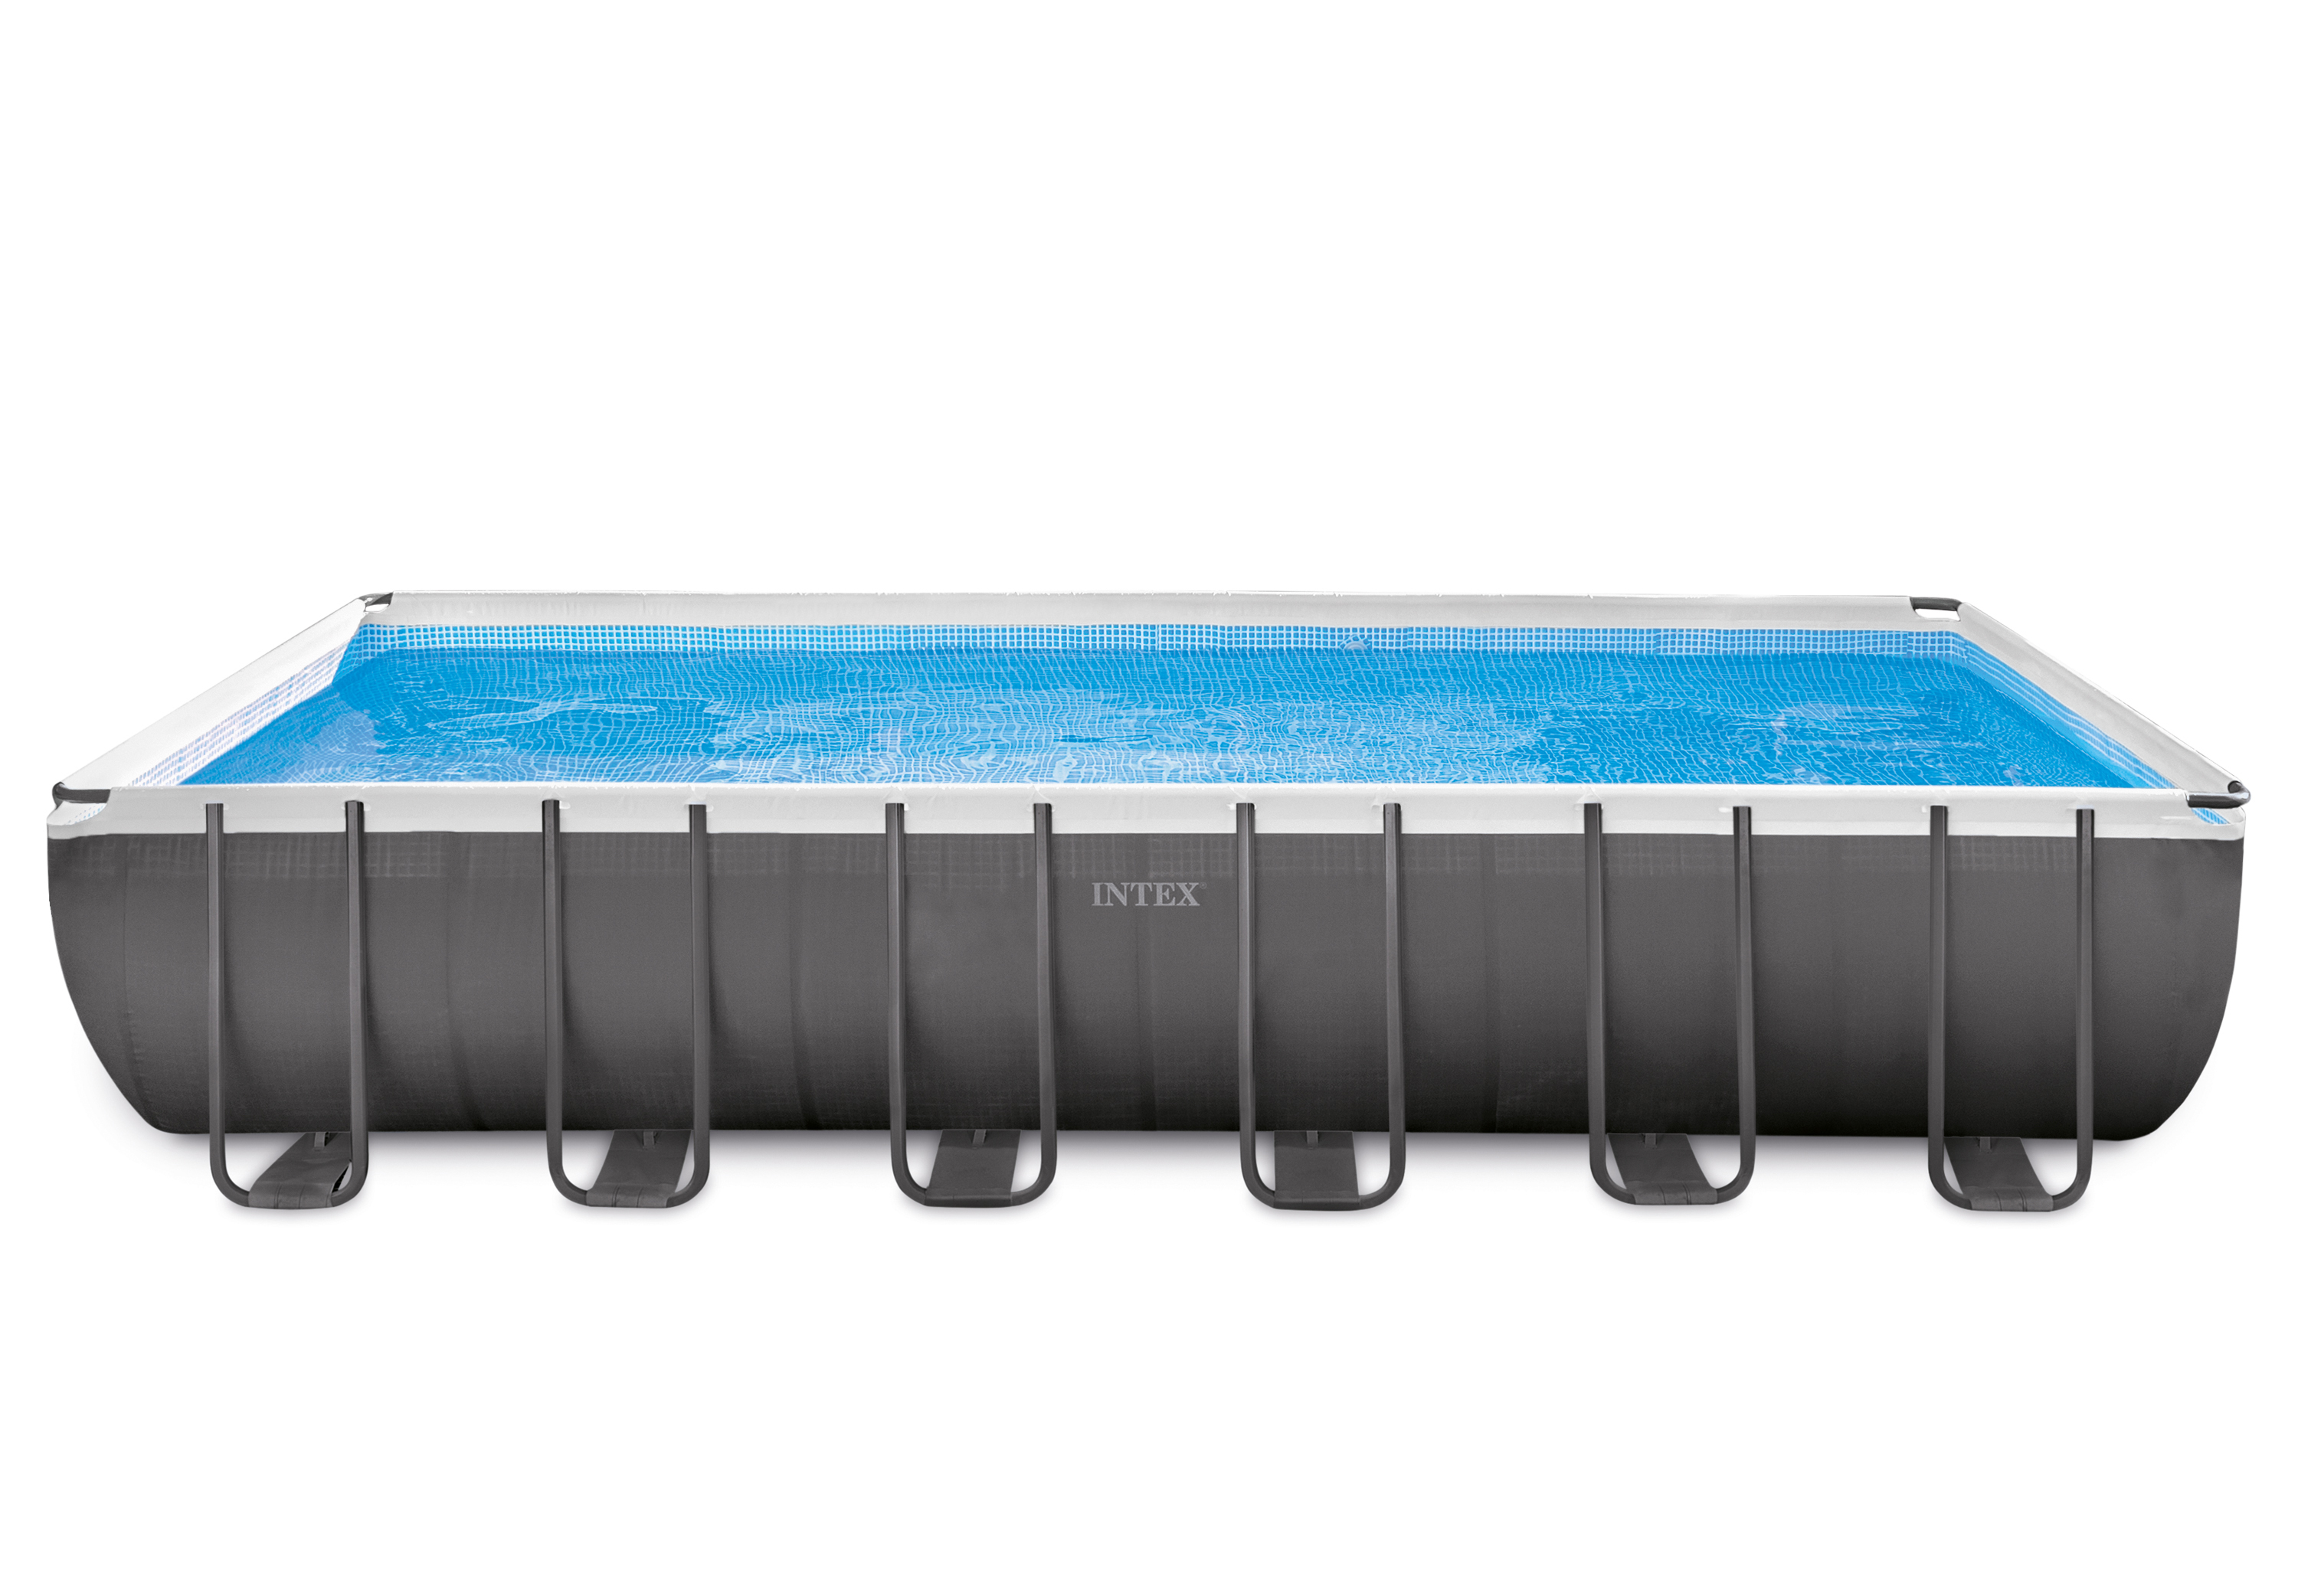 INTEX 24 ft x 12 ft x 52 in Ultra Frame Rectangular Pool Set with 2,100 Gal Sand Filter Pump